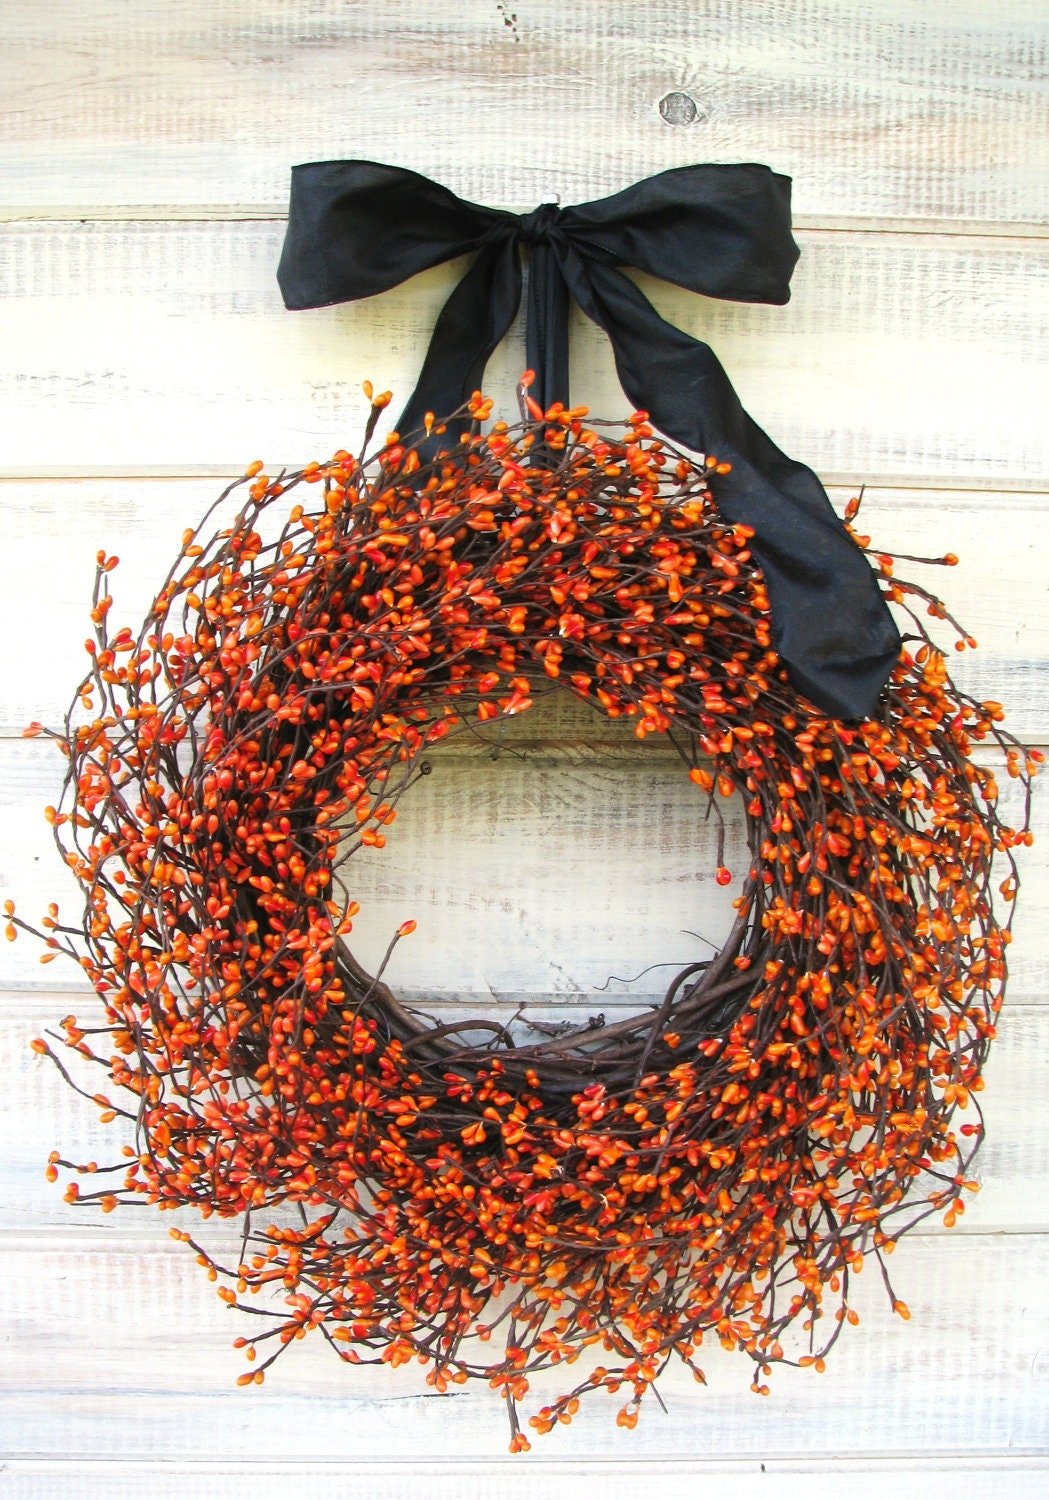 HAUNTED HALLOWEEN-Orange & Black Wreath-Halloween Decor-Fall Wreath-Scented Pumpkin Spice-Choose your Scent and Ribbon - WildRidgeDesign